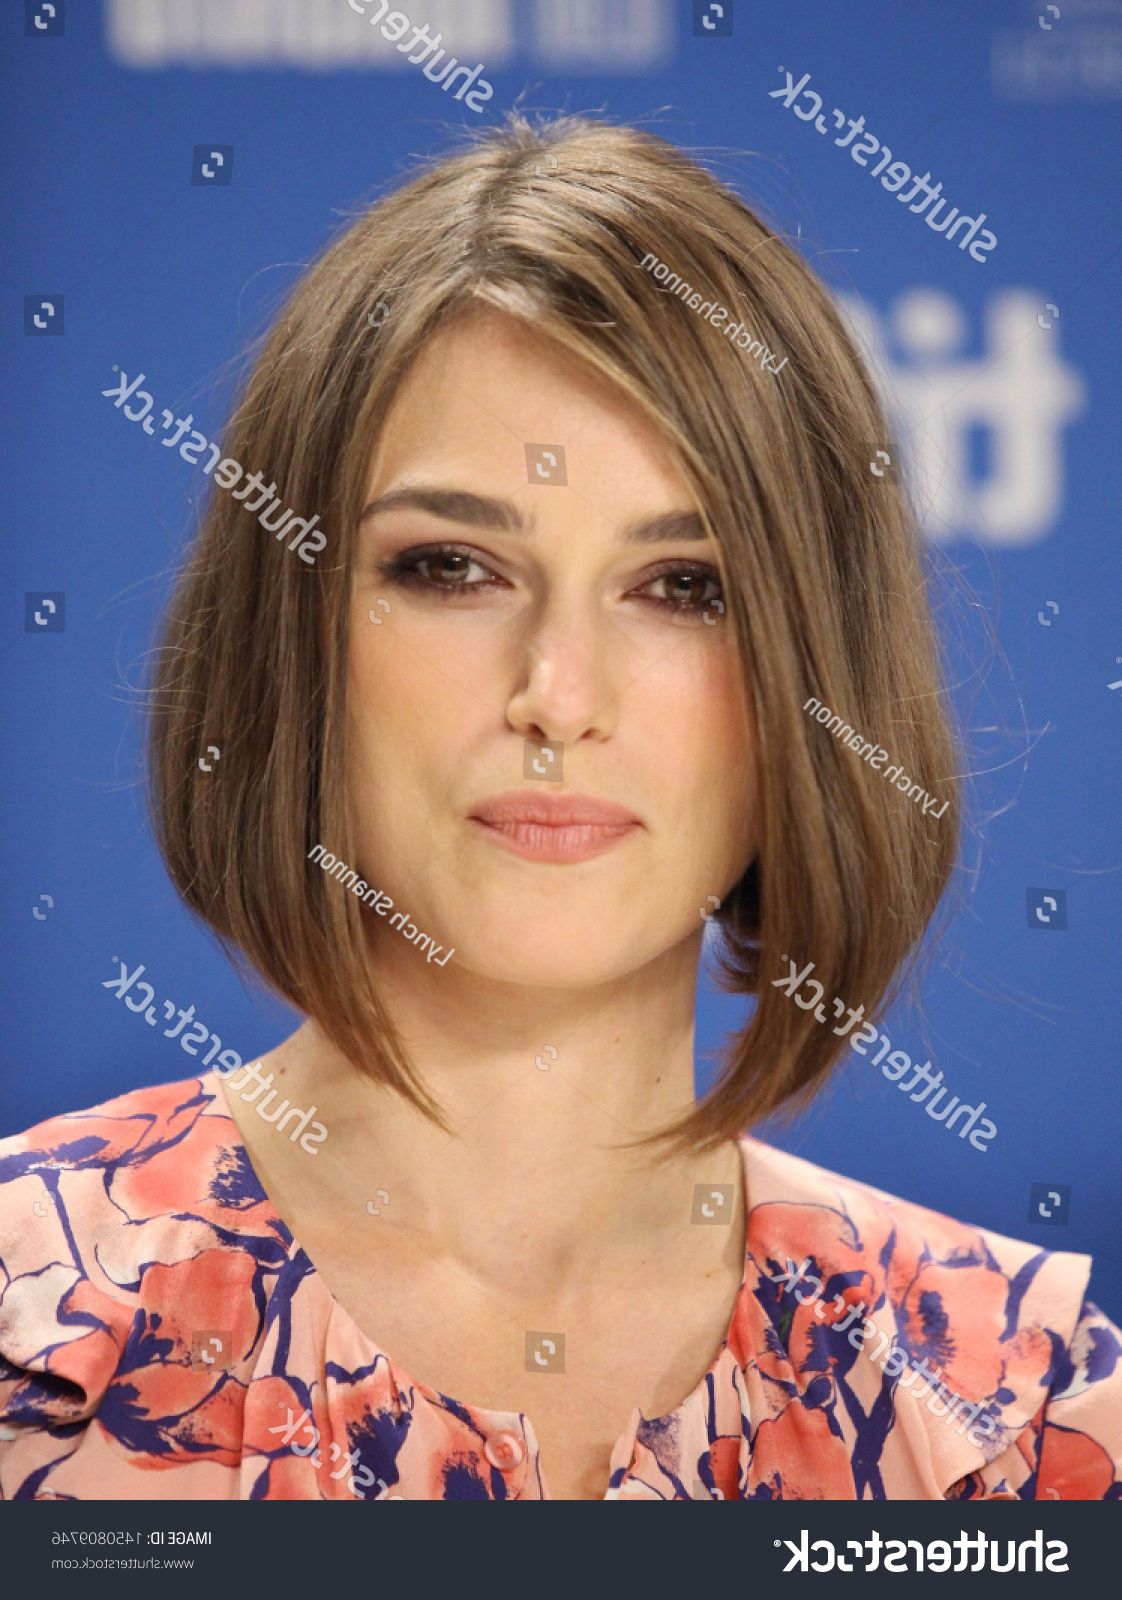 Most Recently Released Blunt Bob Hairstyles In Los Angelescaliforniausa 06112019 Women Blunt Bob Stock (View 14 of 20)